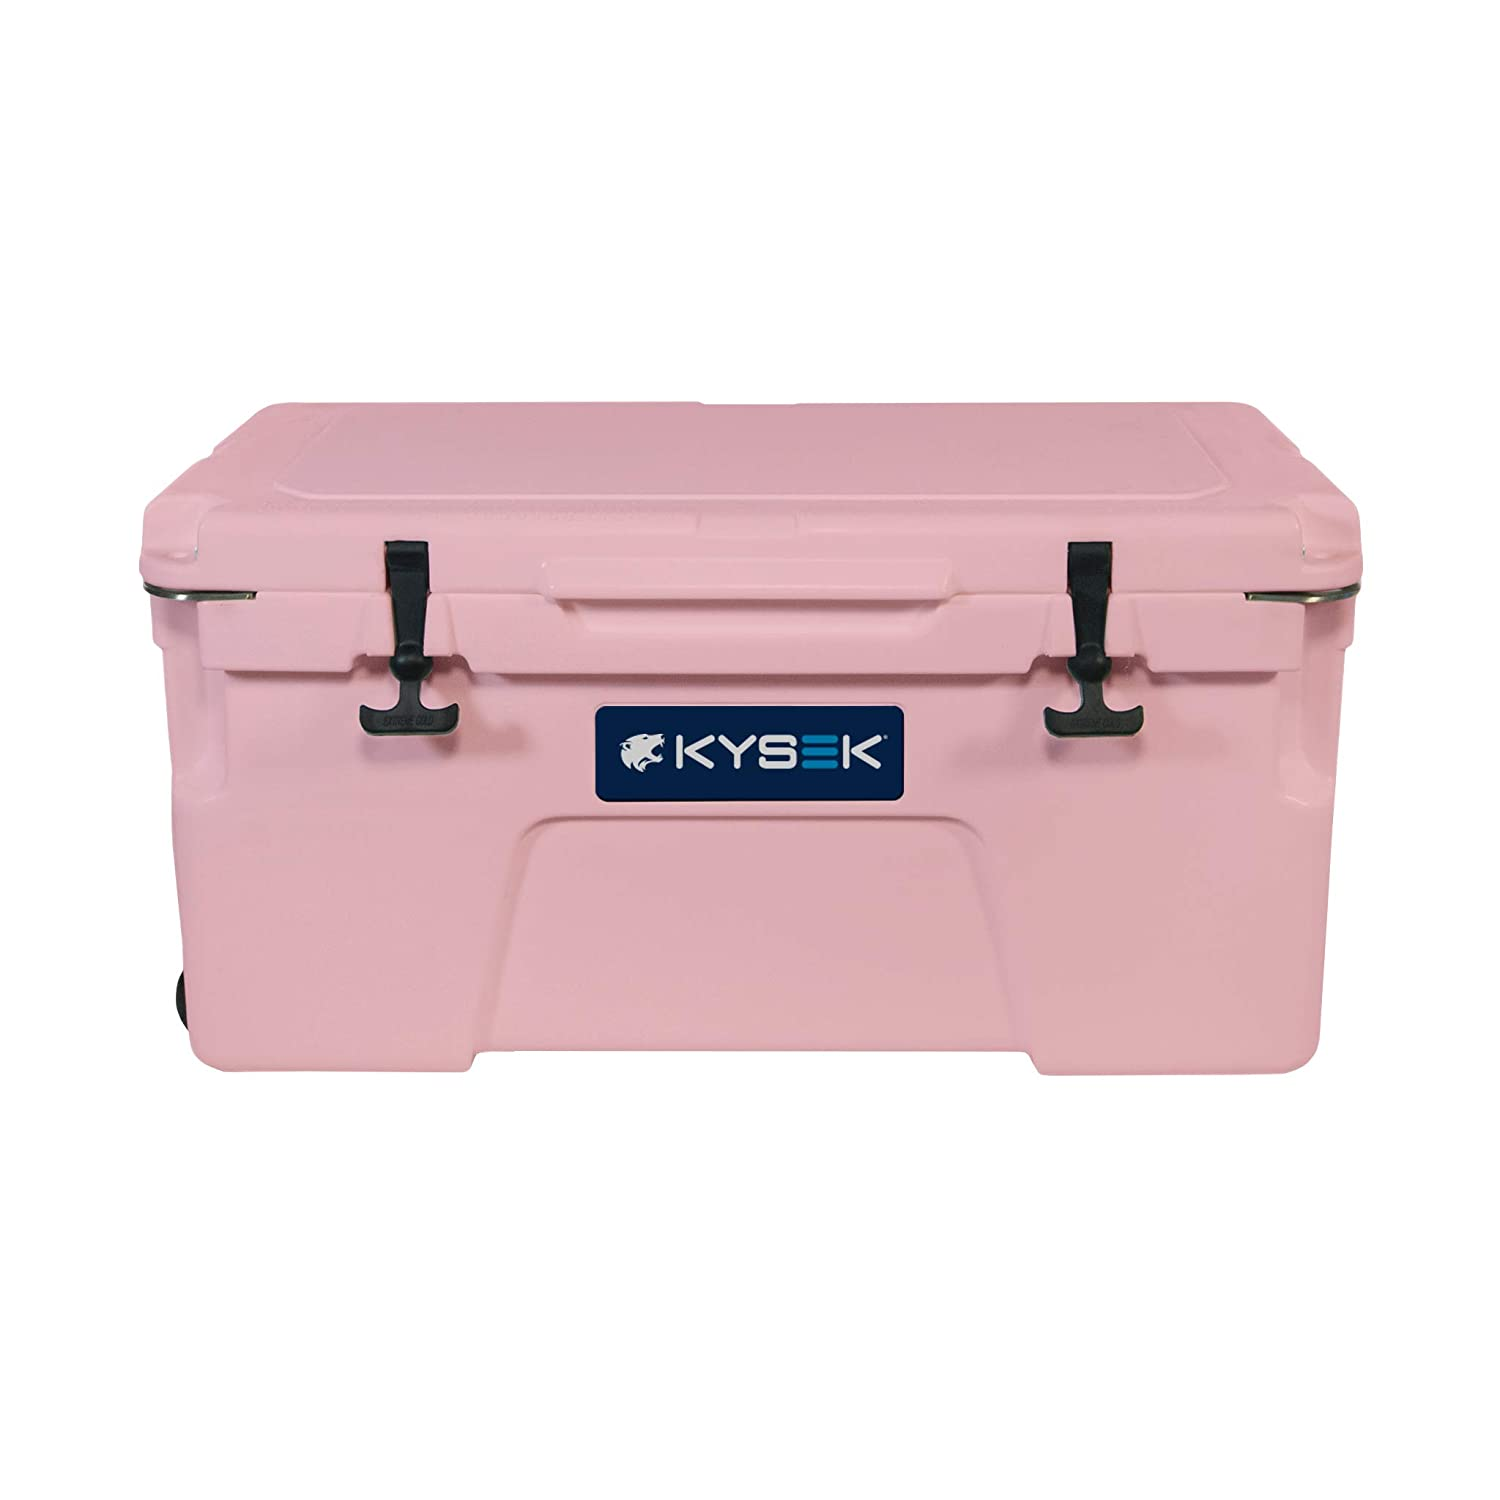 KYSEK The Ultimate Ice Chest Extreme Cold Cooler Marine Blue 35 Liter ECSECBB035L02